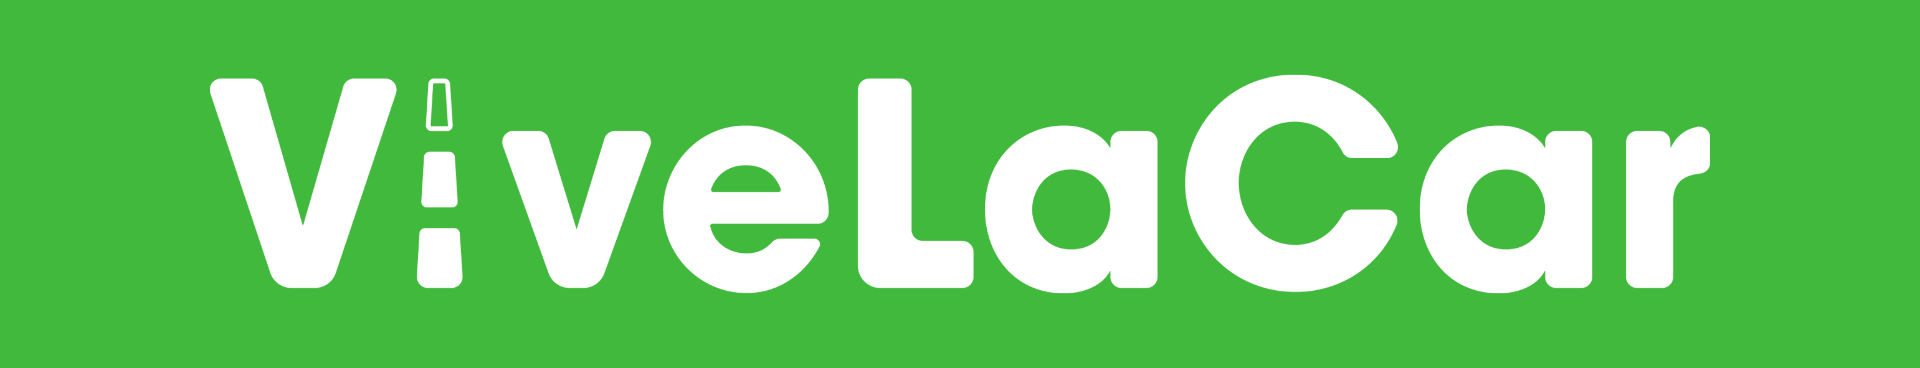 Vivelacar Logo Green Background